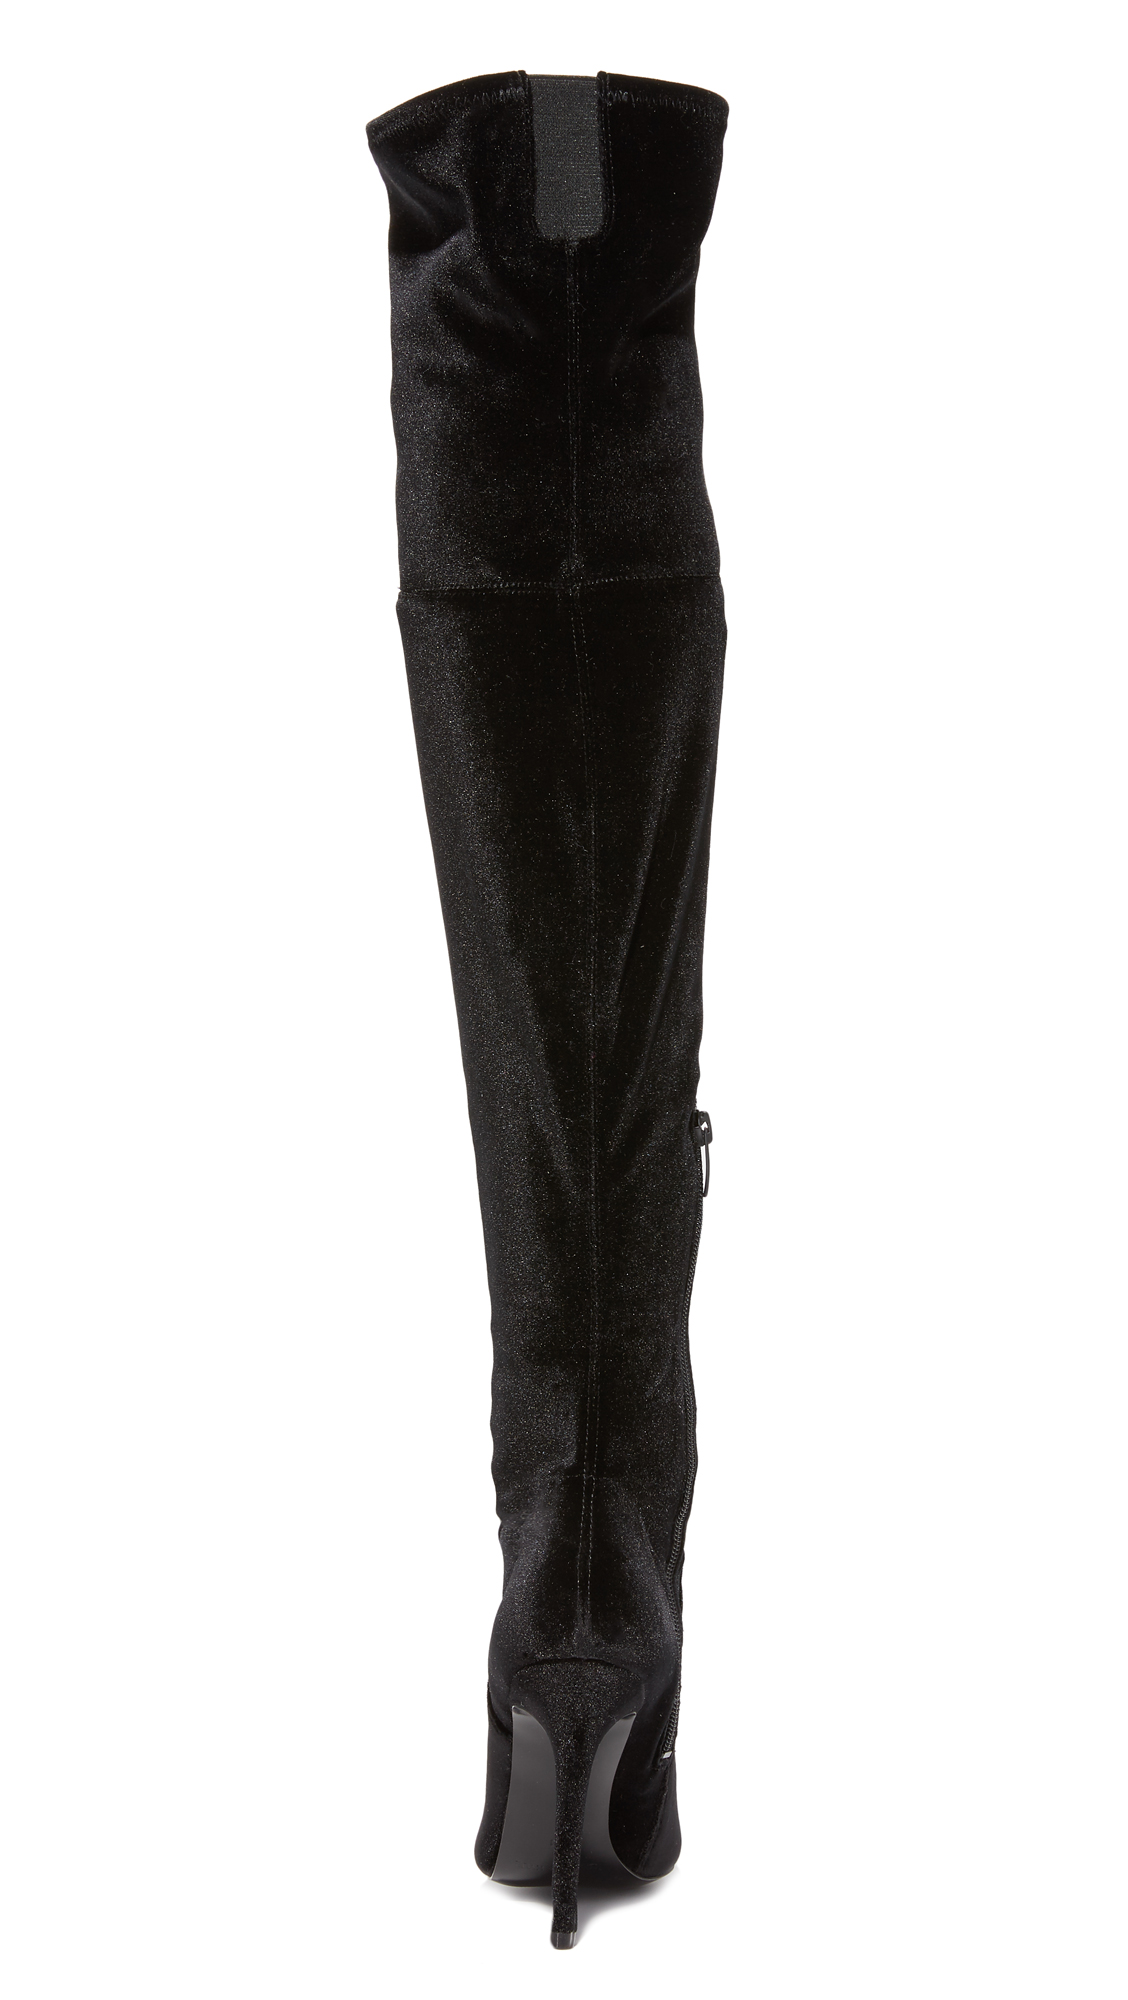 77ff14eafb9 KENDALL + KYLIE Ayla II Velvet Thigh High Boots